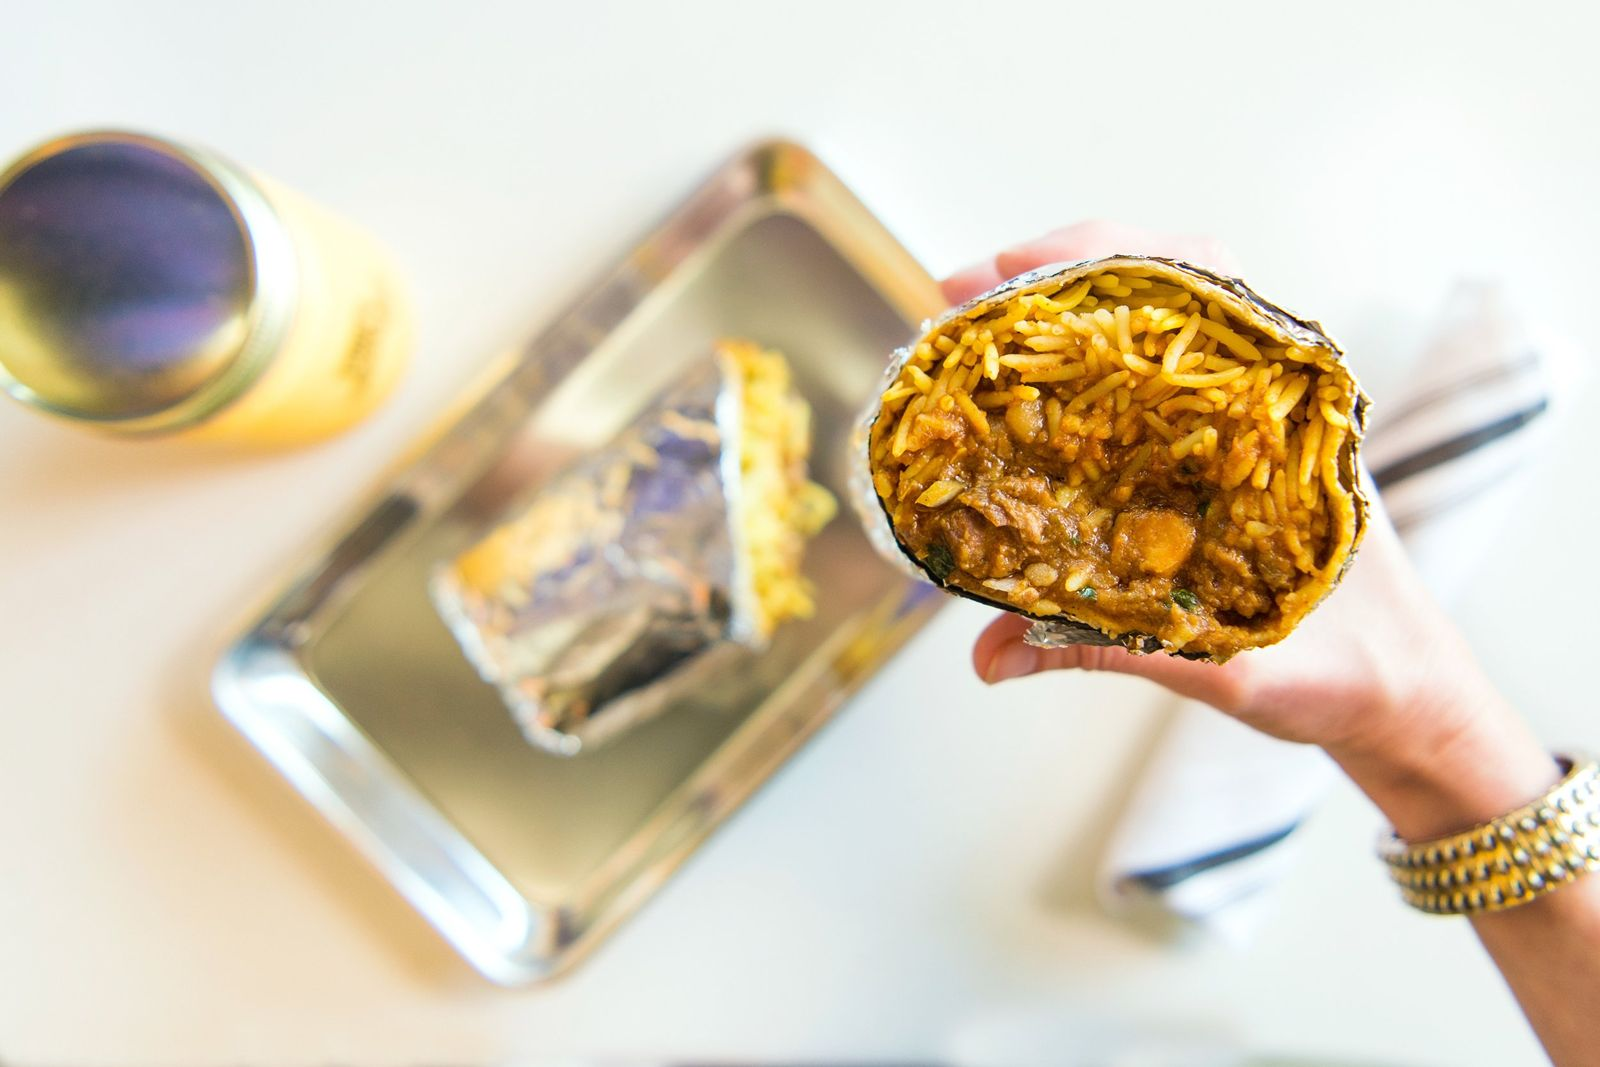 Curry Up Now Expands Bay Area Delivery With New Digital Kitchen Outpost in Lafayette